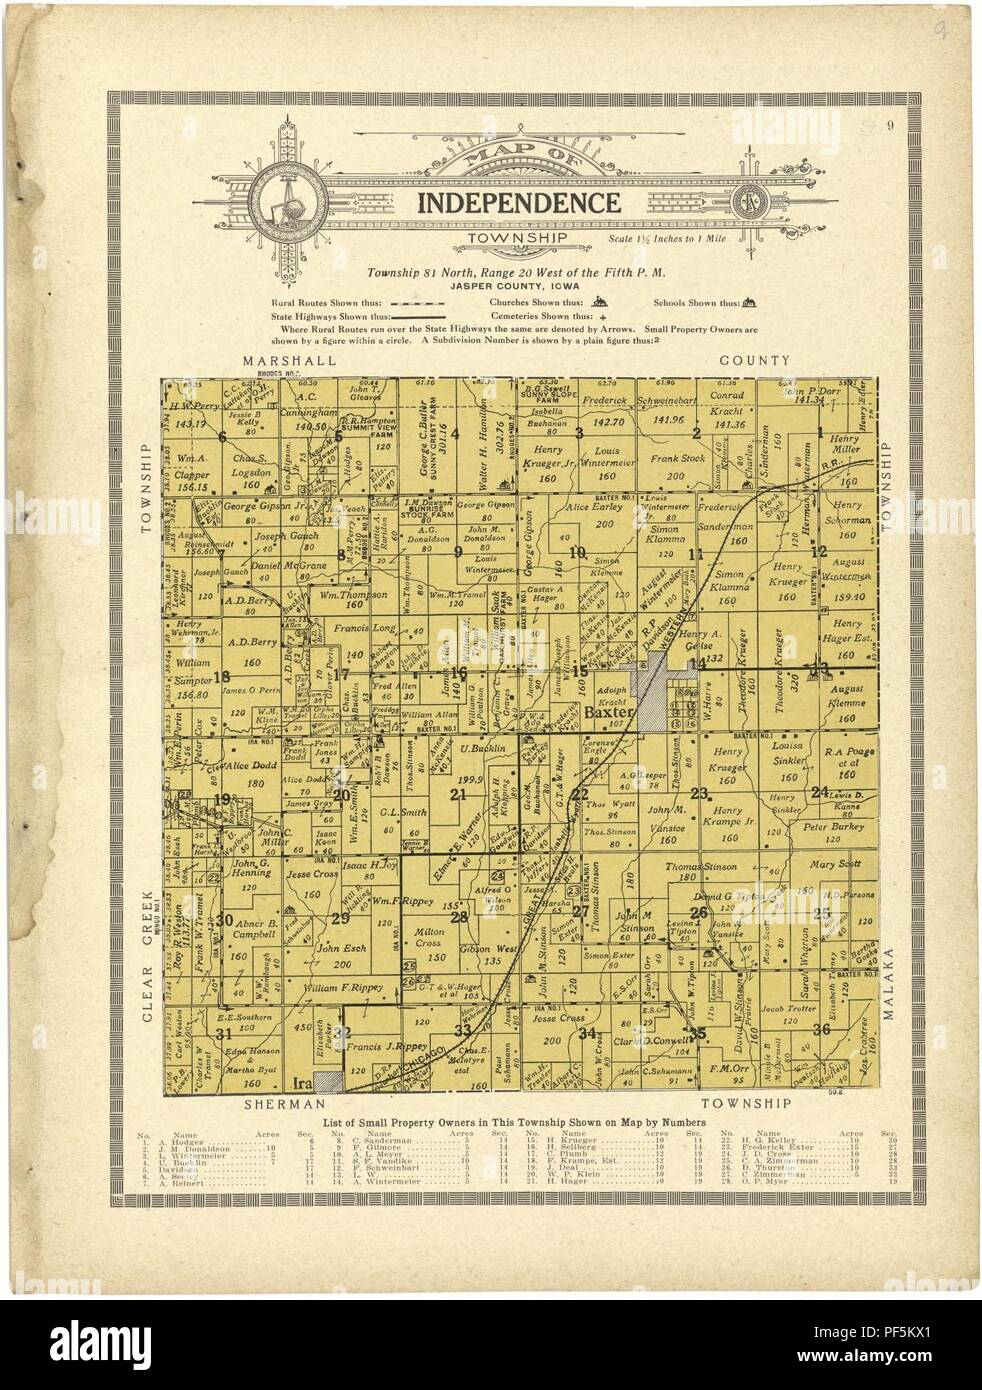 Atlas And Plat Book Of Jasper County Iowa Containing Outline Map